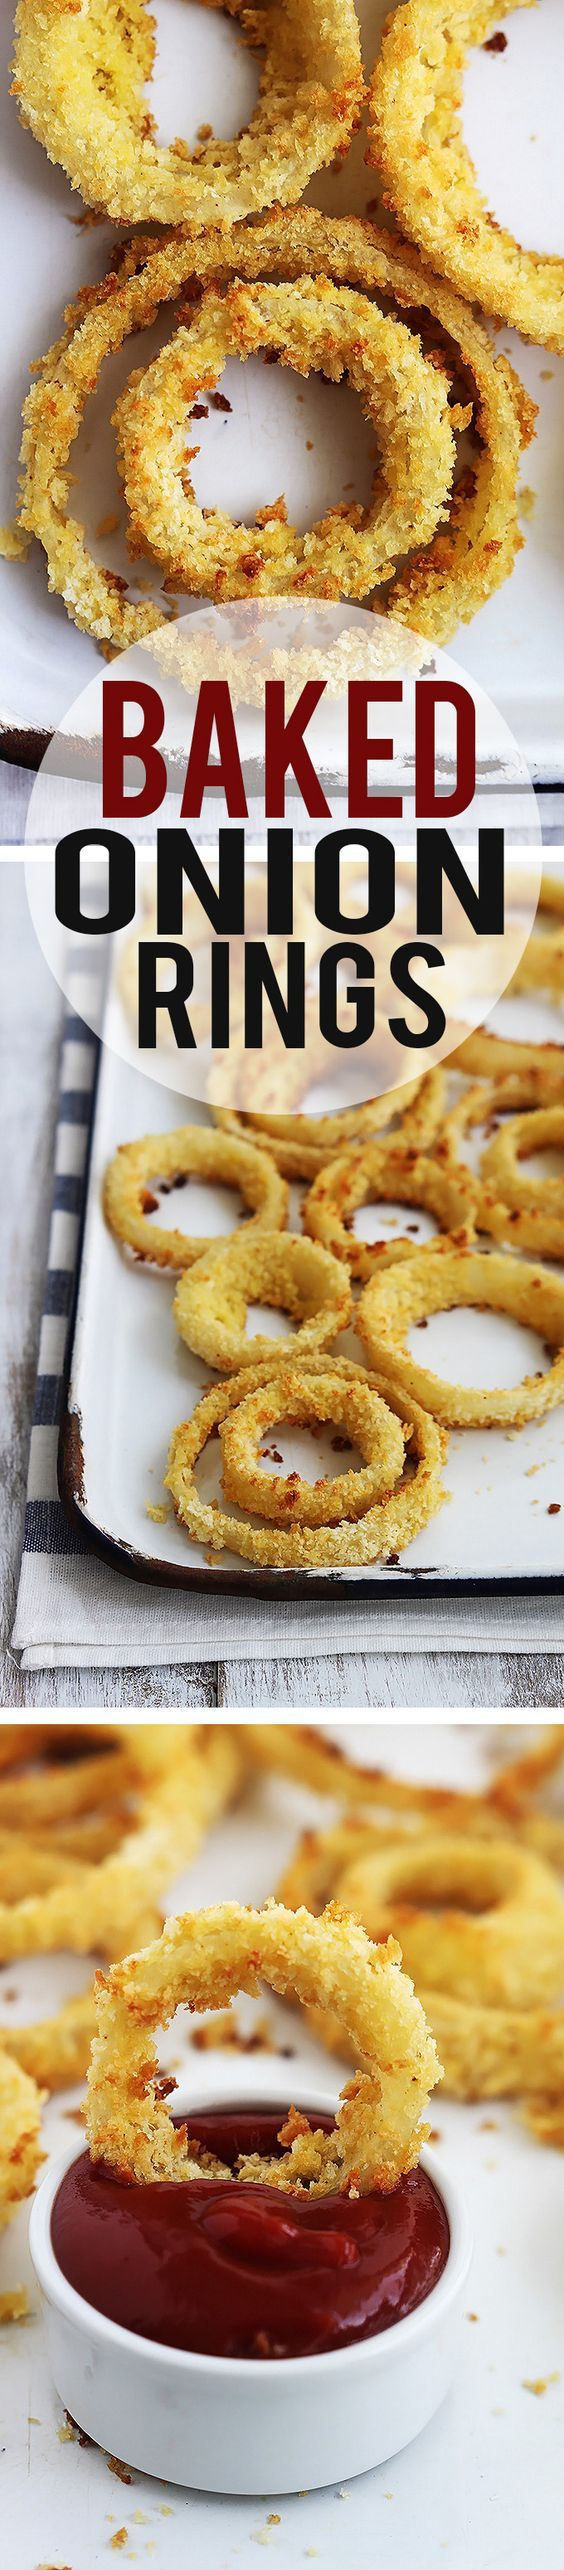 Easy and insanely delicious baked onion rings. No fuss, no messy deep frying, and still all of the flavor you love in a traditional onion ring!: